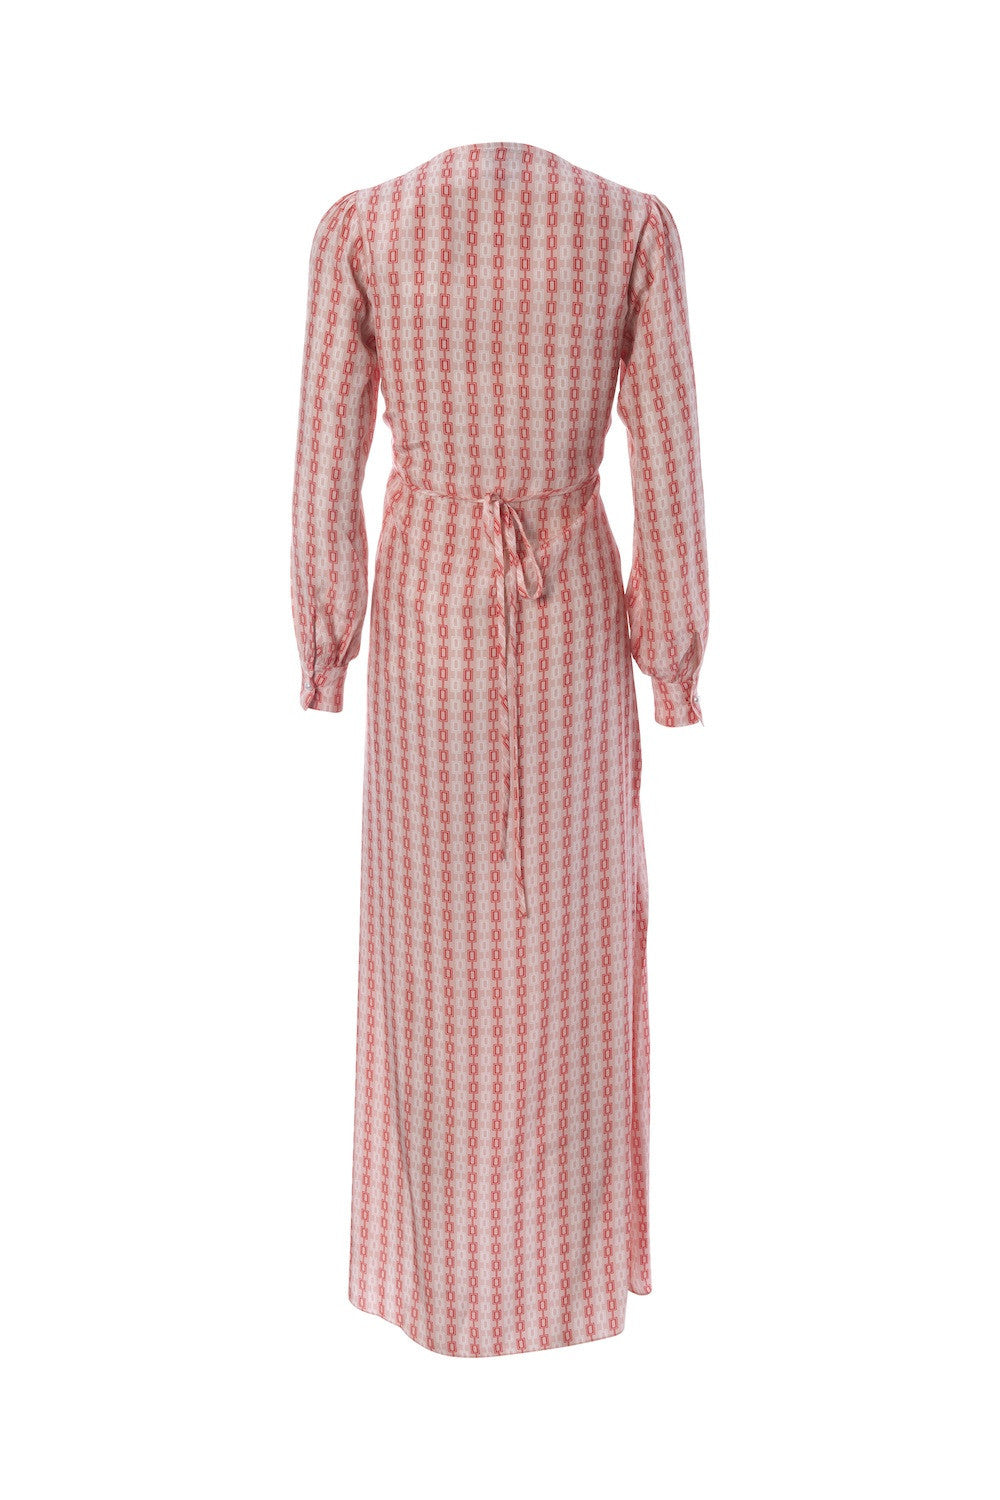 Juno Gown - Pink - Maternity Outlet - Madderson London